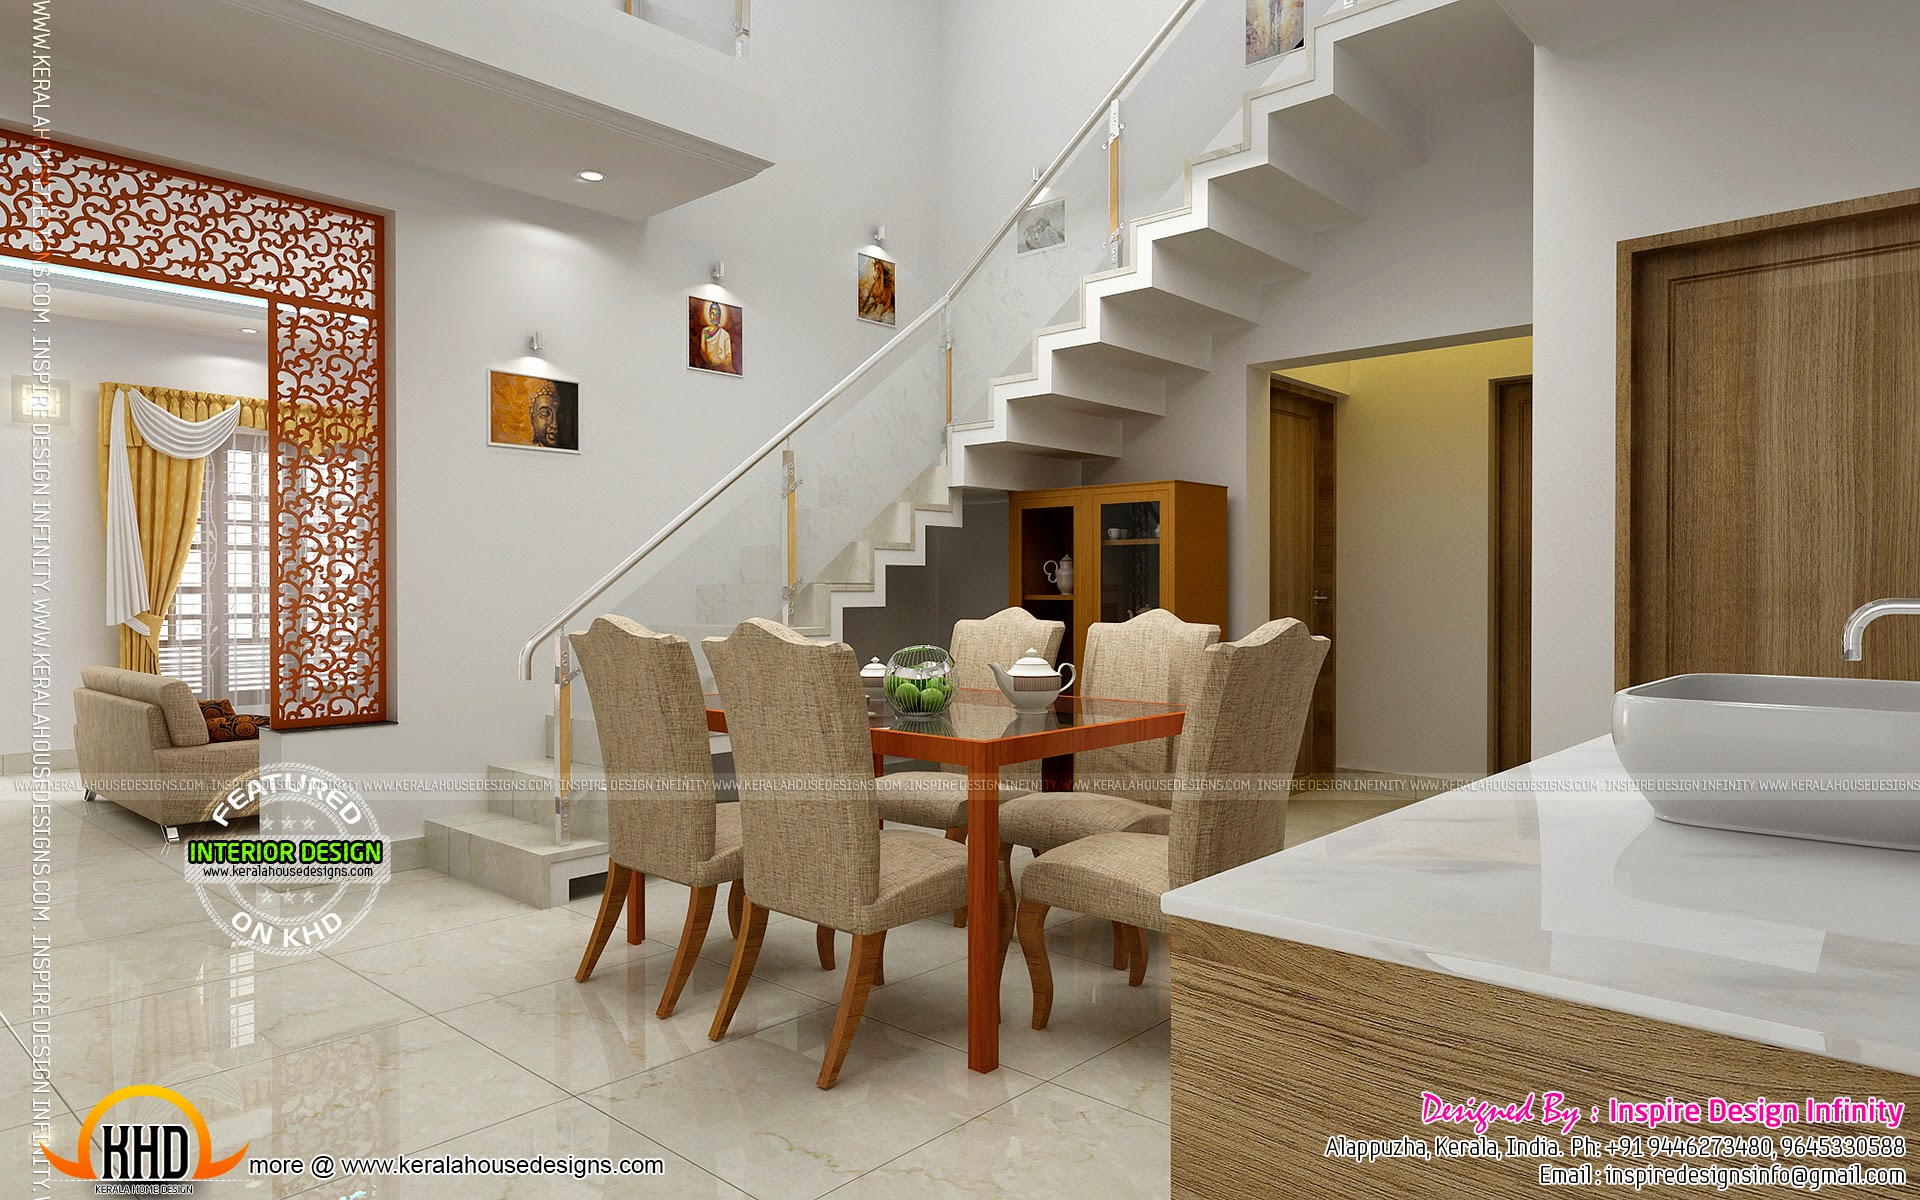 Dining room designs kerala home design and floor plans Home design dining room ideas